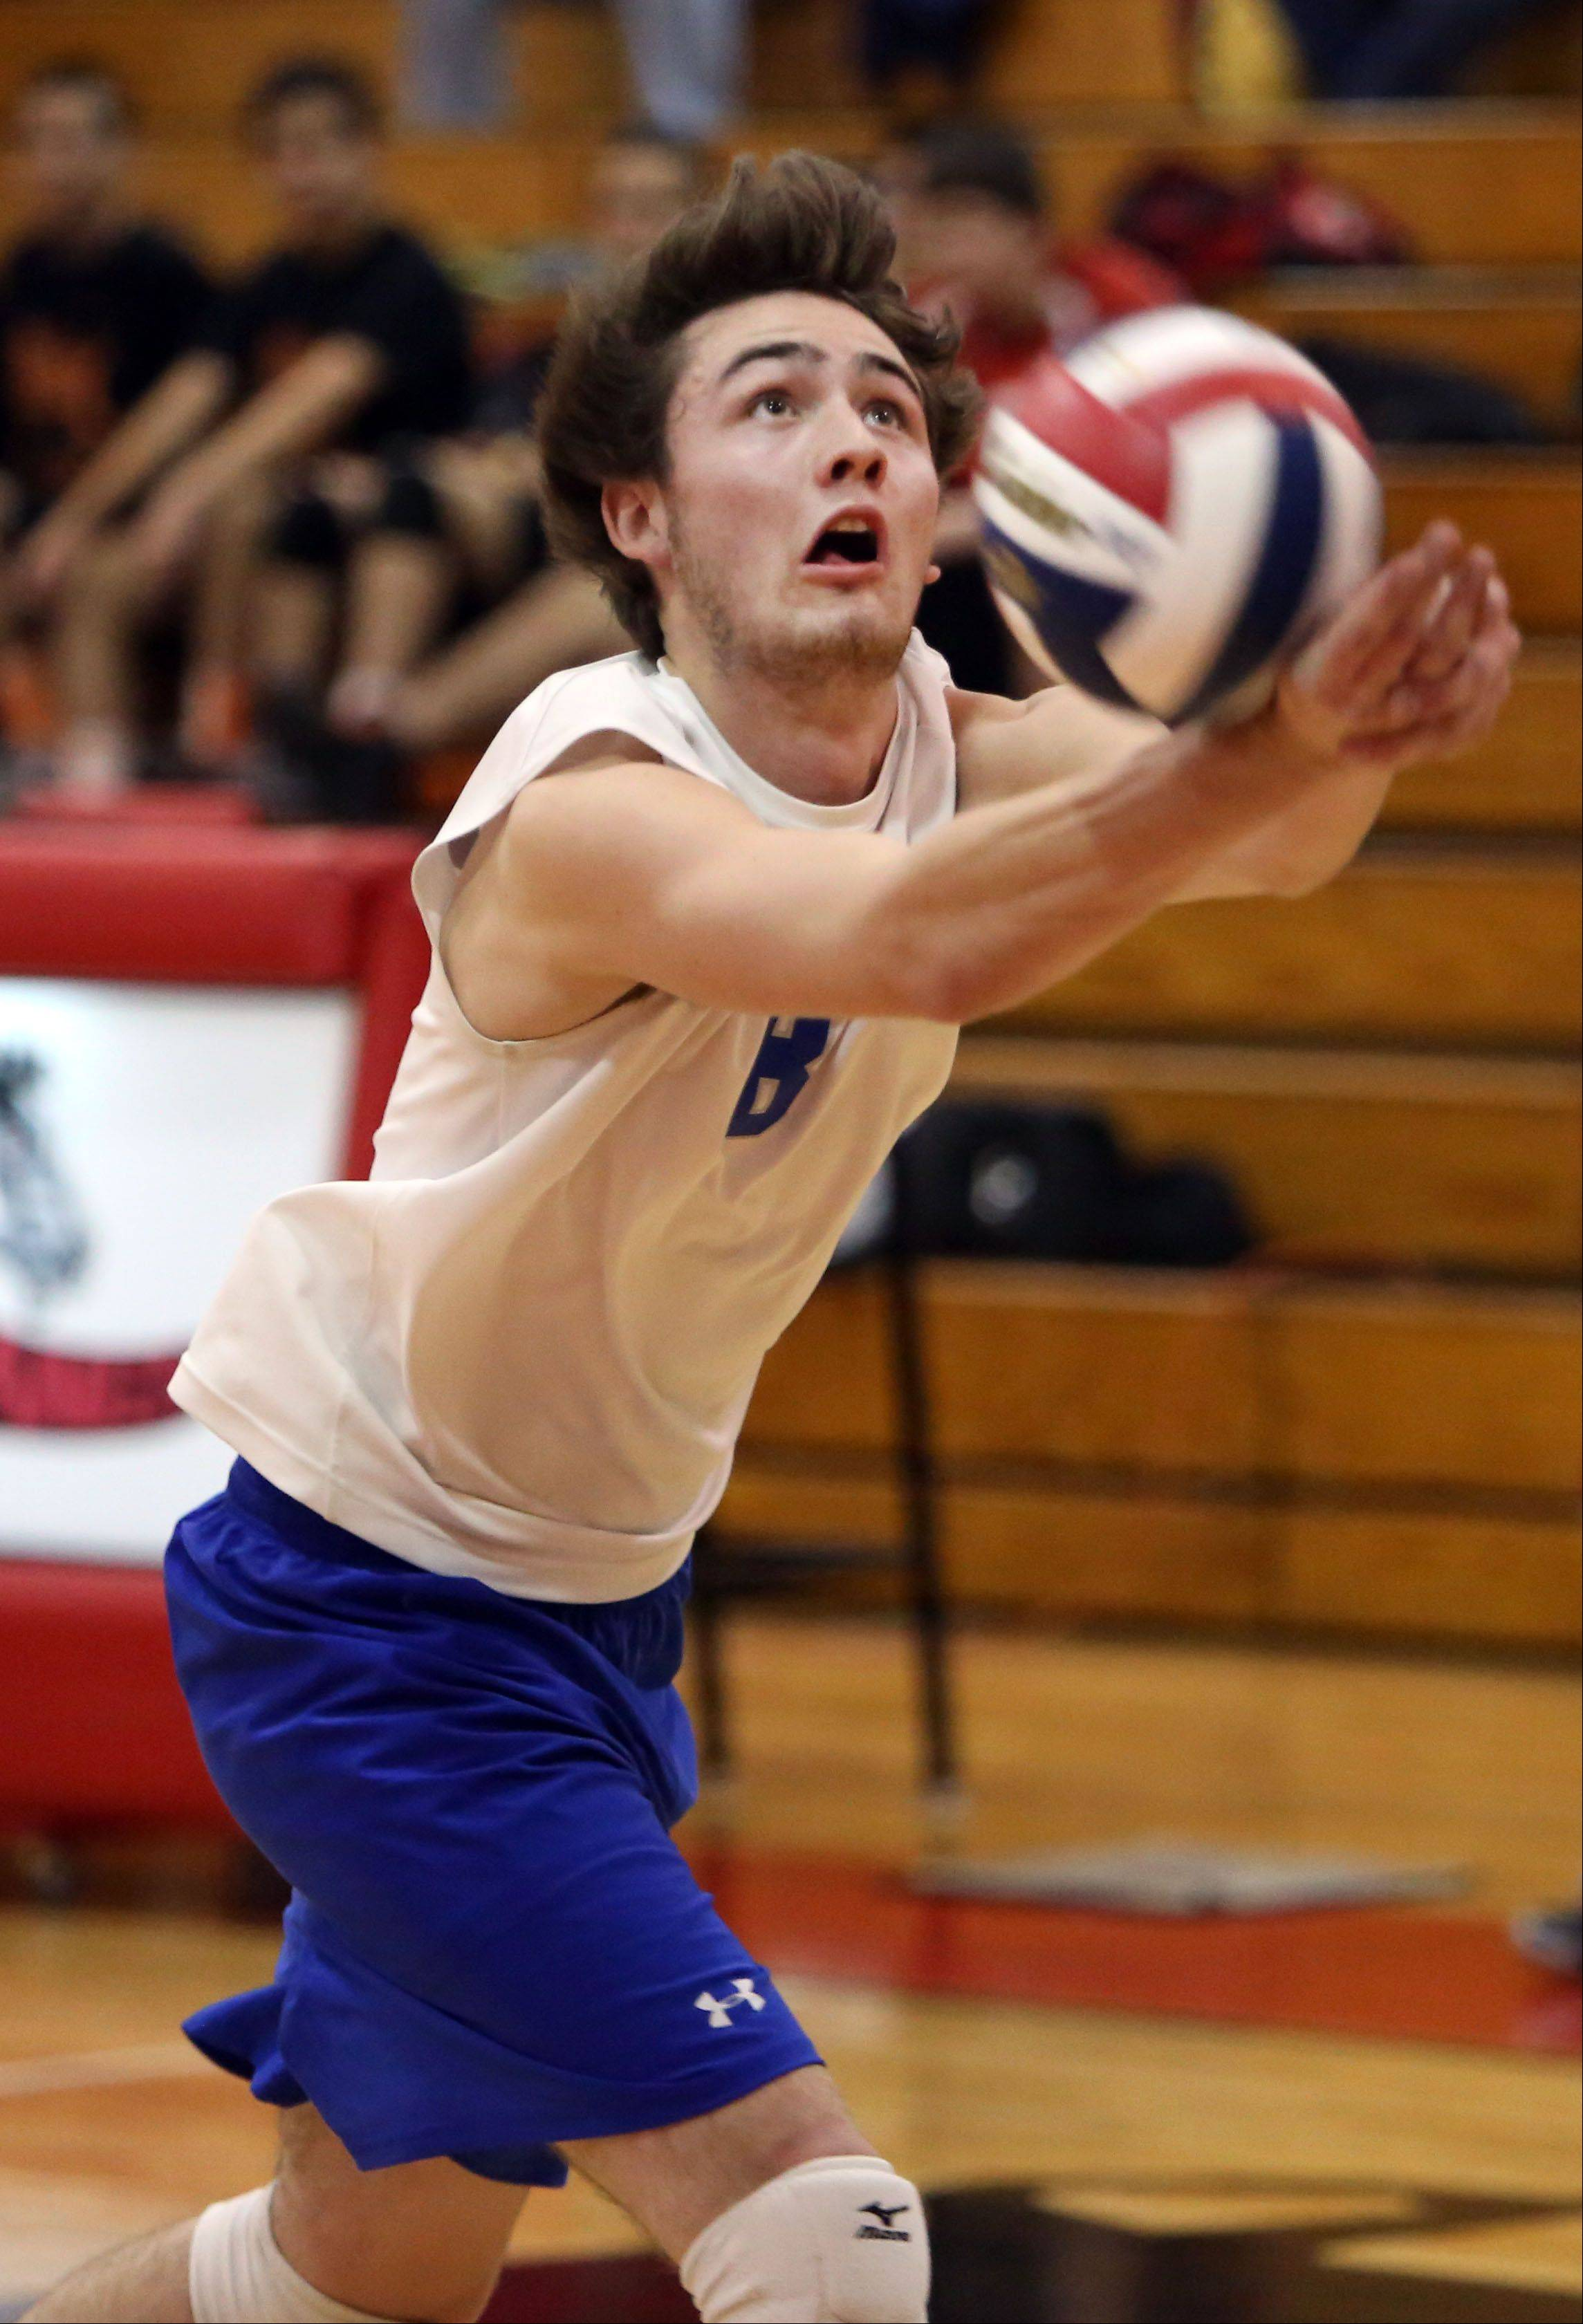 Vernon Hills' Ryan Opitz tracks down a stray ball during their game Wednesday night in Mundelein.